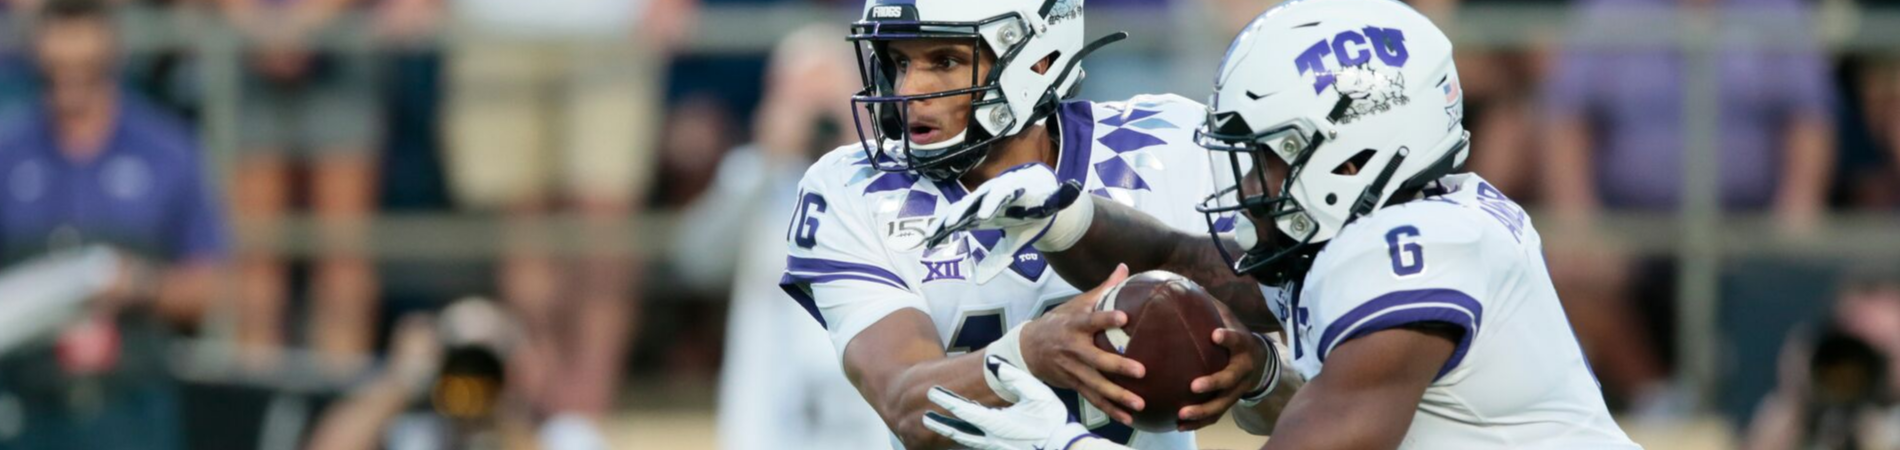 Texas Christian Horned Frogs football